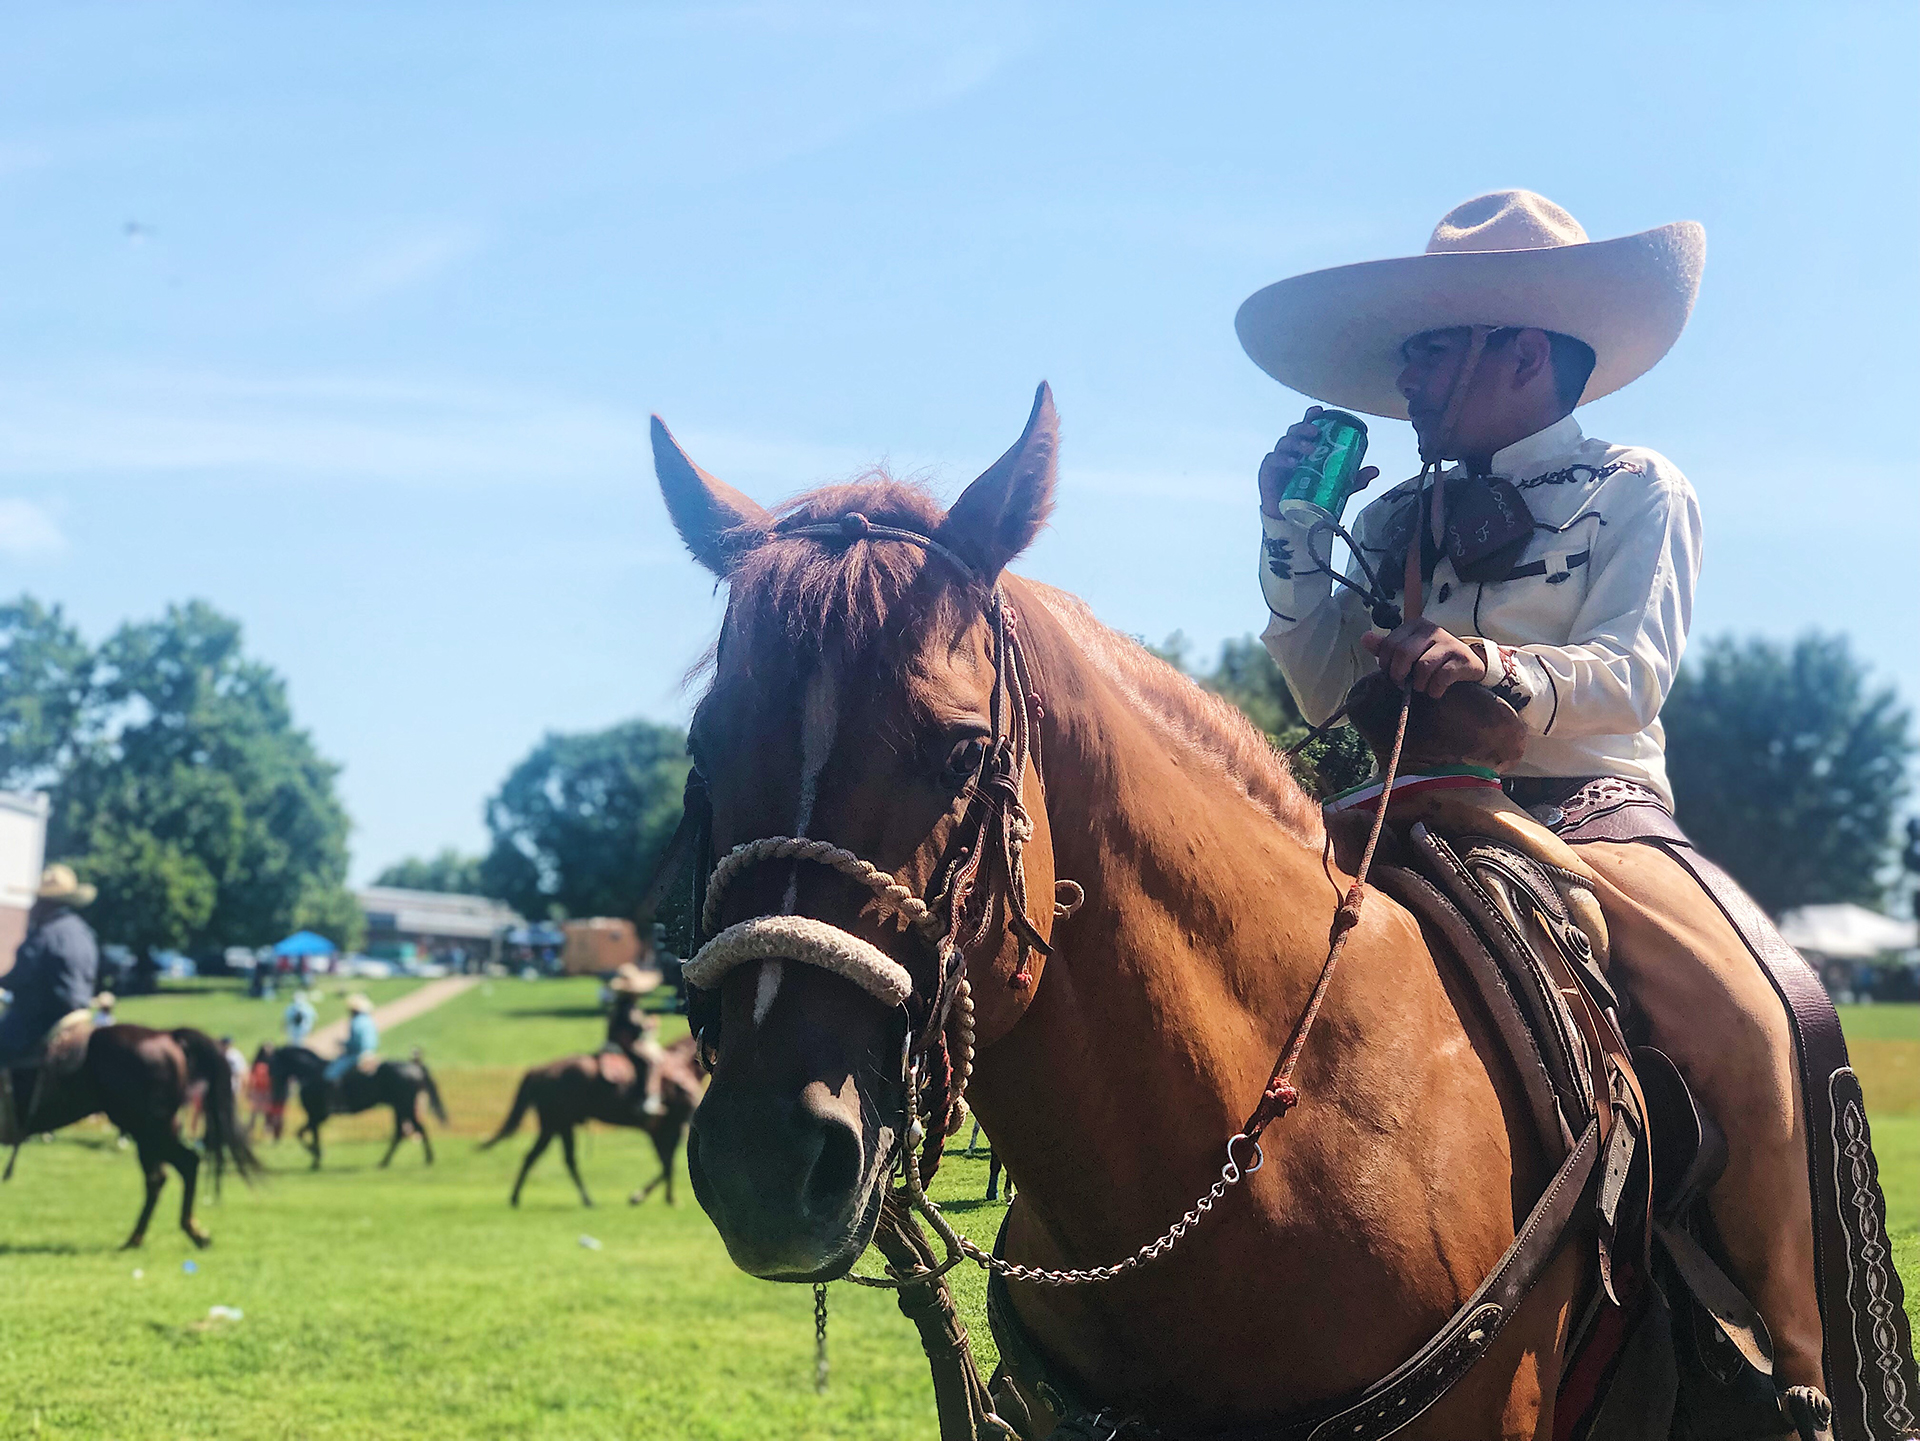 A boy on a horse with a cowboy hat clutches the saddle and sips a Sprite while taking a break during the Latino Arts Festival on Sept. 7. (Vicky Diaz-Camacho | Flatland)